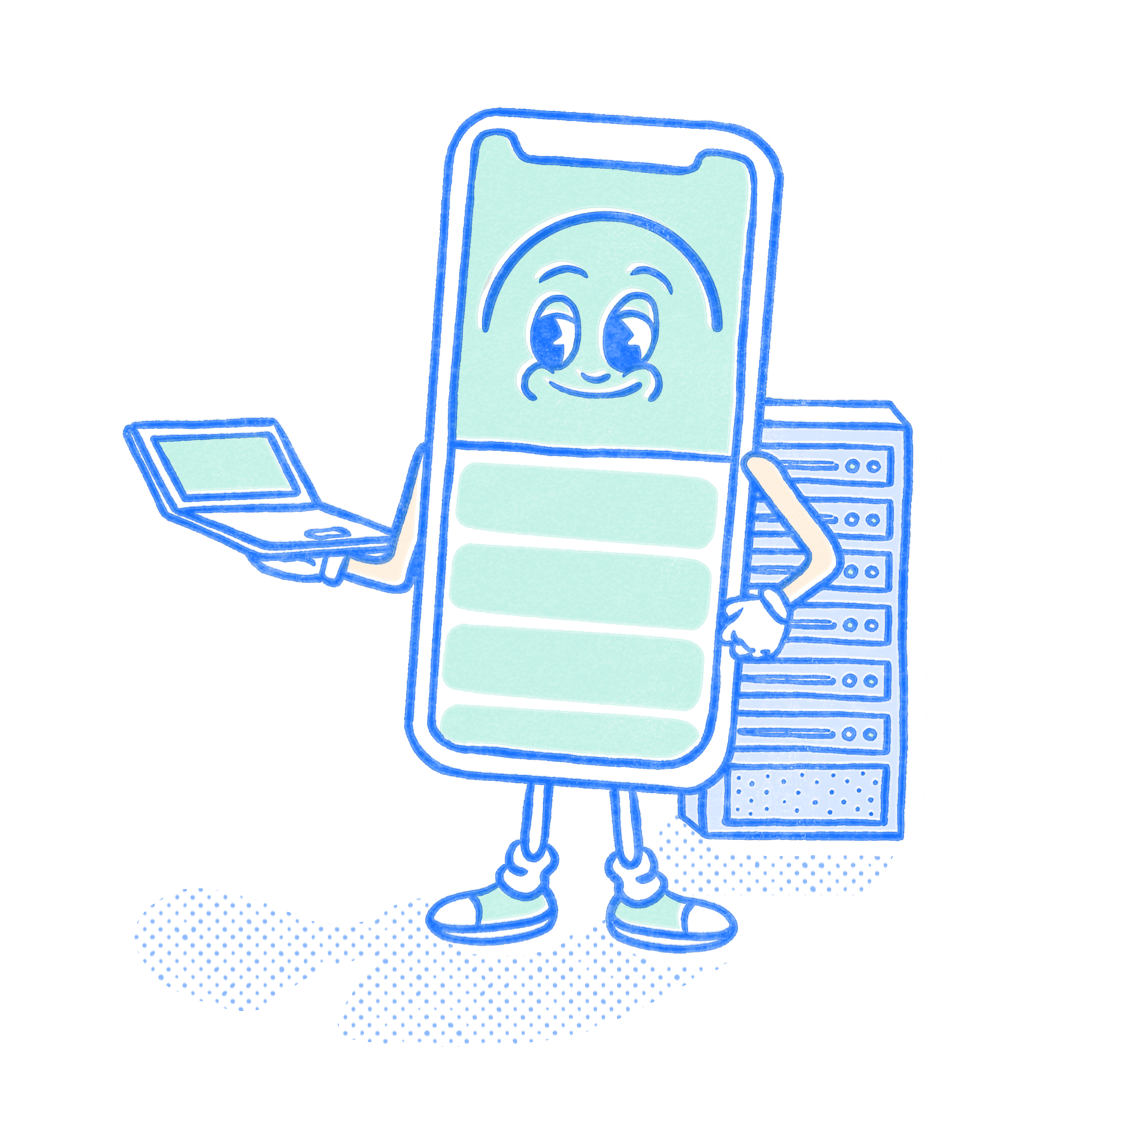 IT & Cybersecurity Pocket Prep mascot holding a laptop in front of a server rack. Illustration.